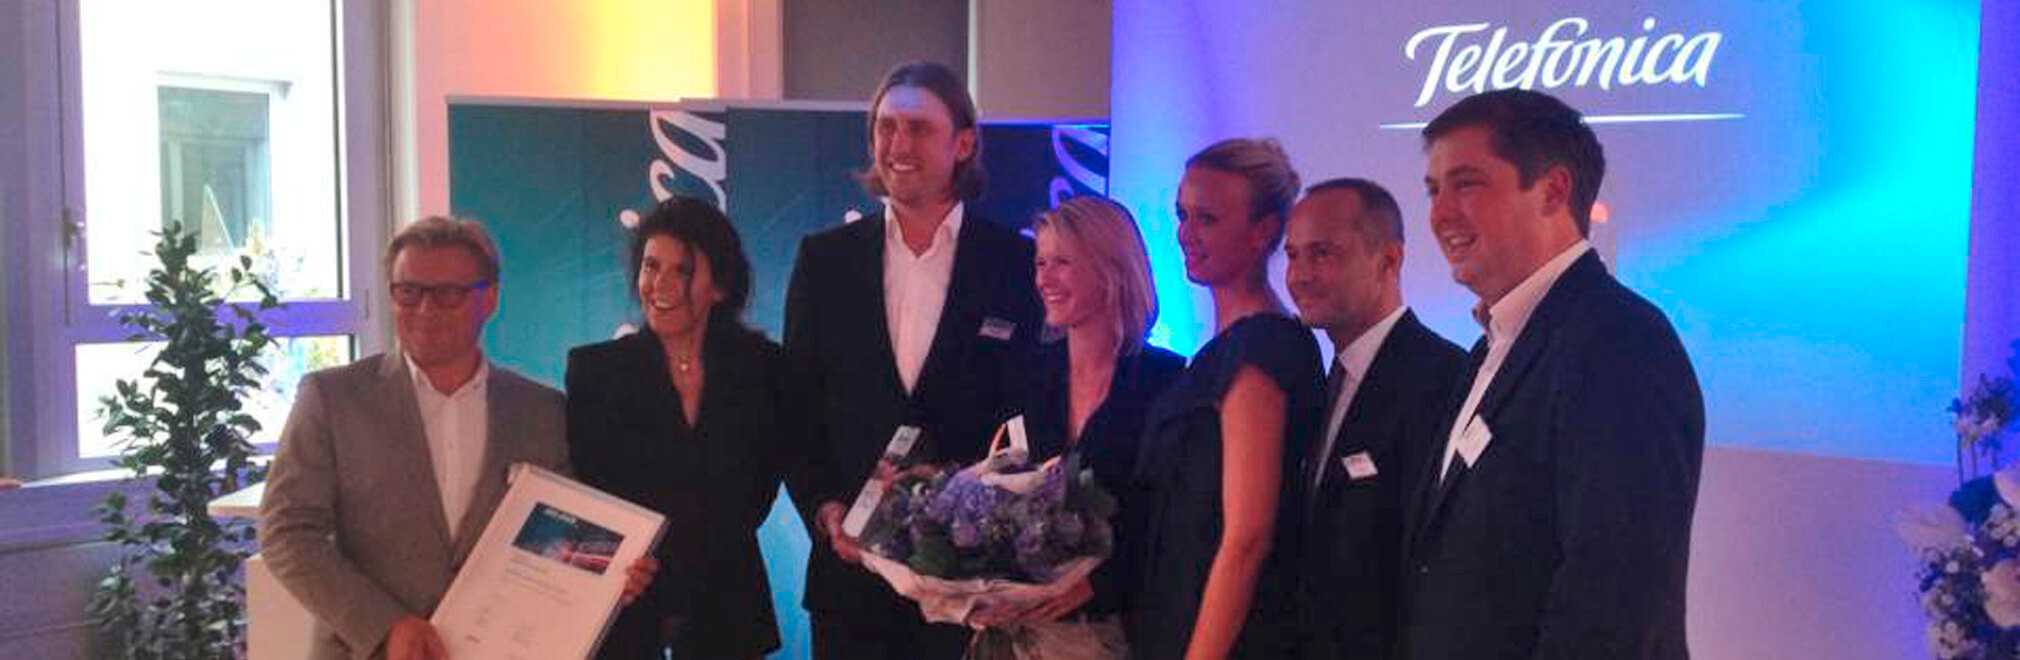 Beste Telefónica Marketing-Agentur 2014